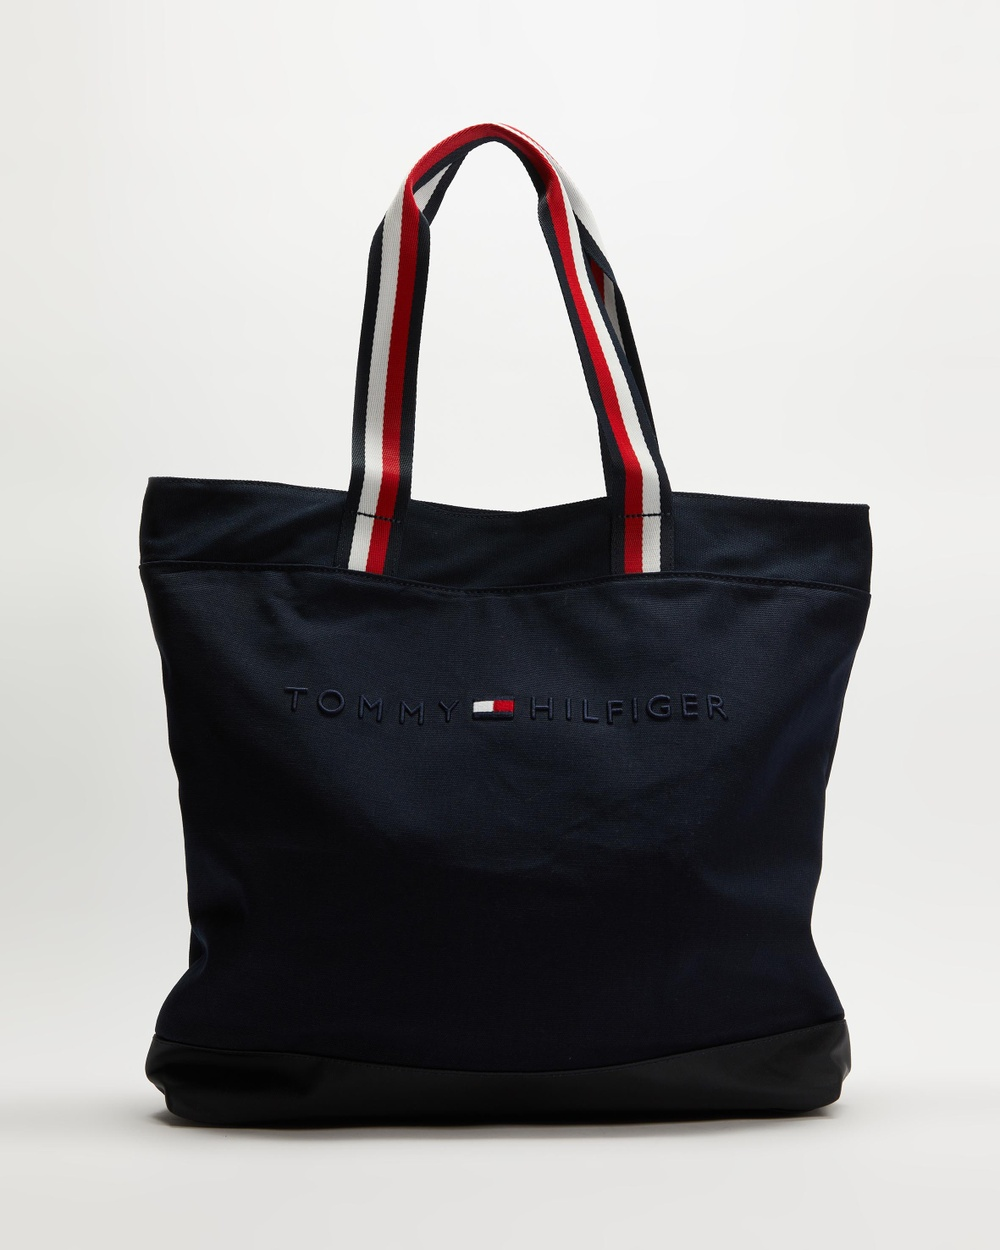 Tommy Hilfiger Canvas Tote With Strap Bags Desert Sky